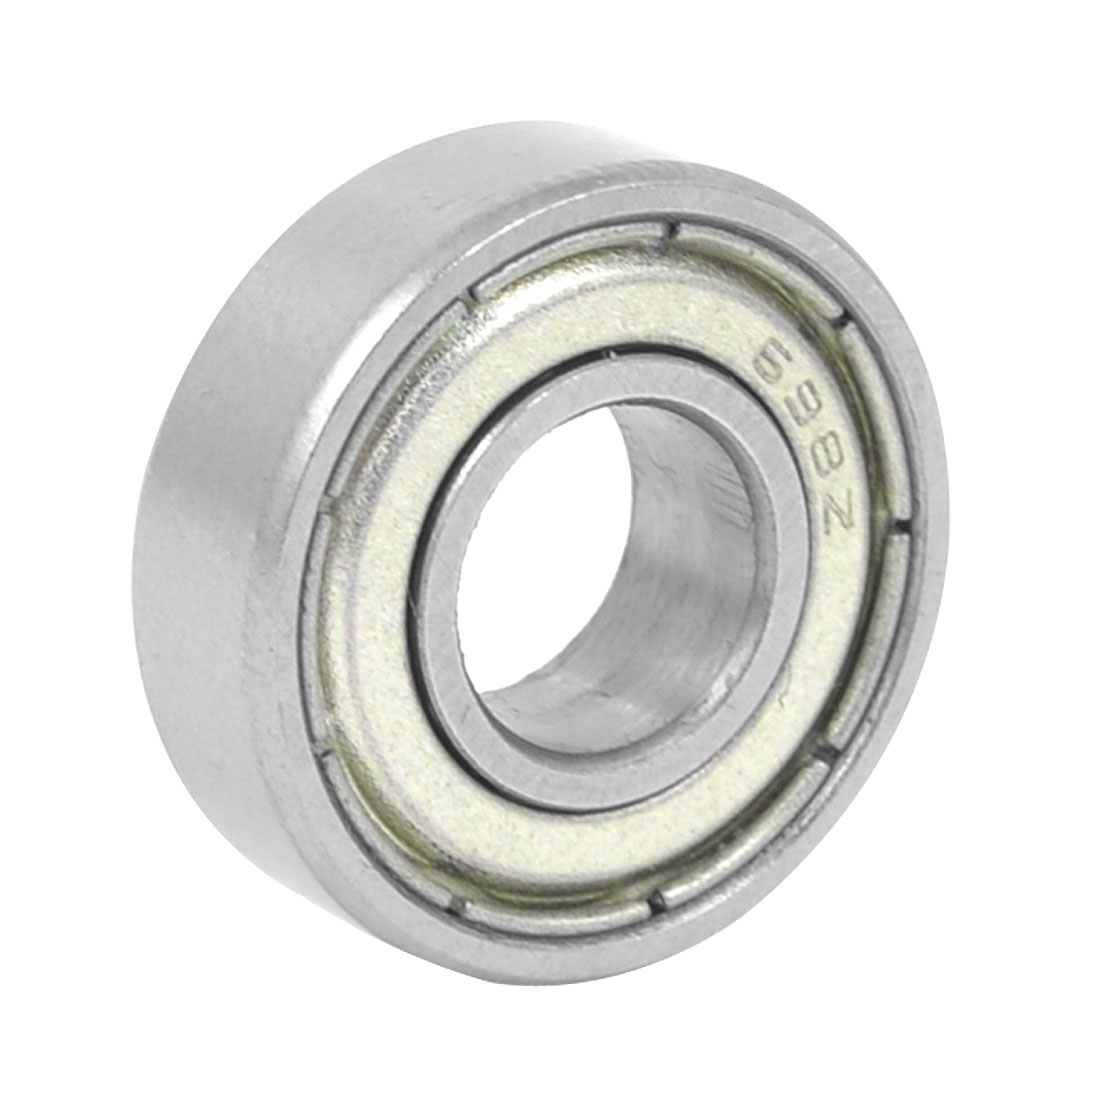 698Z 8mm x 19mm x 6mm One Row Sealed Deep Groove Ball Bearings